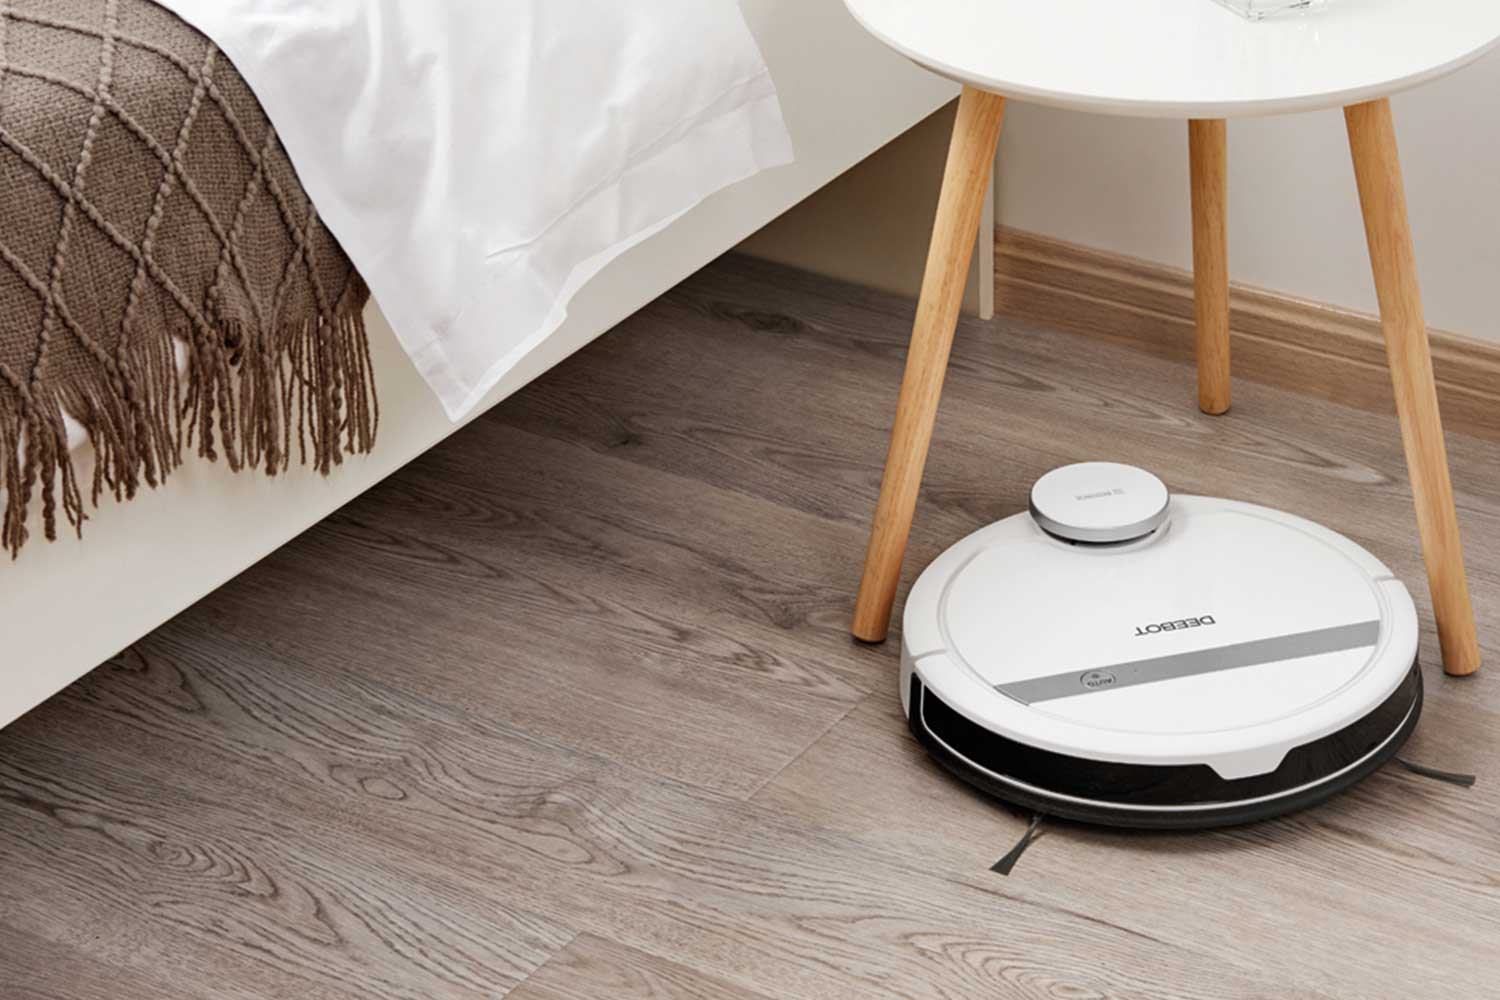 190318-cleaning-robot-4.jpg